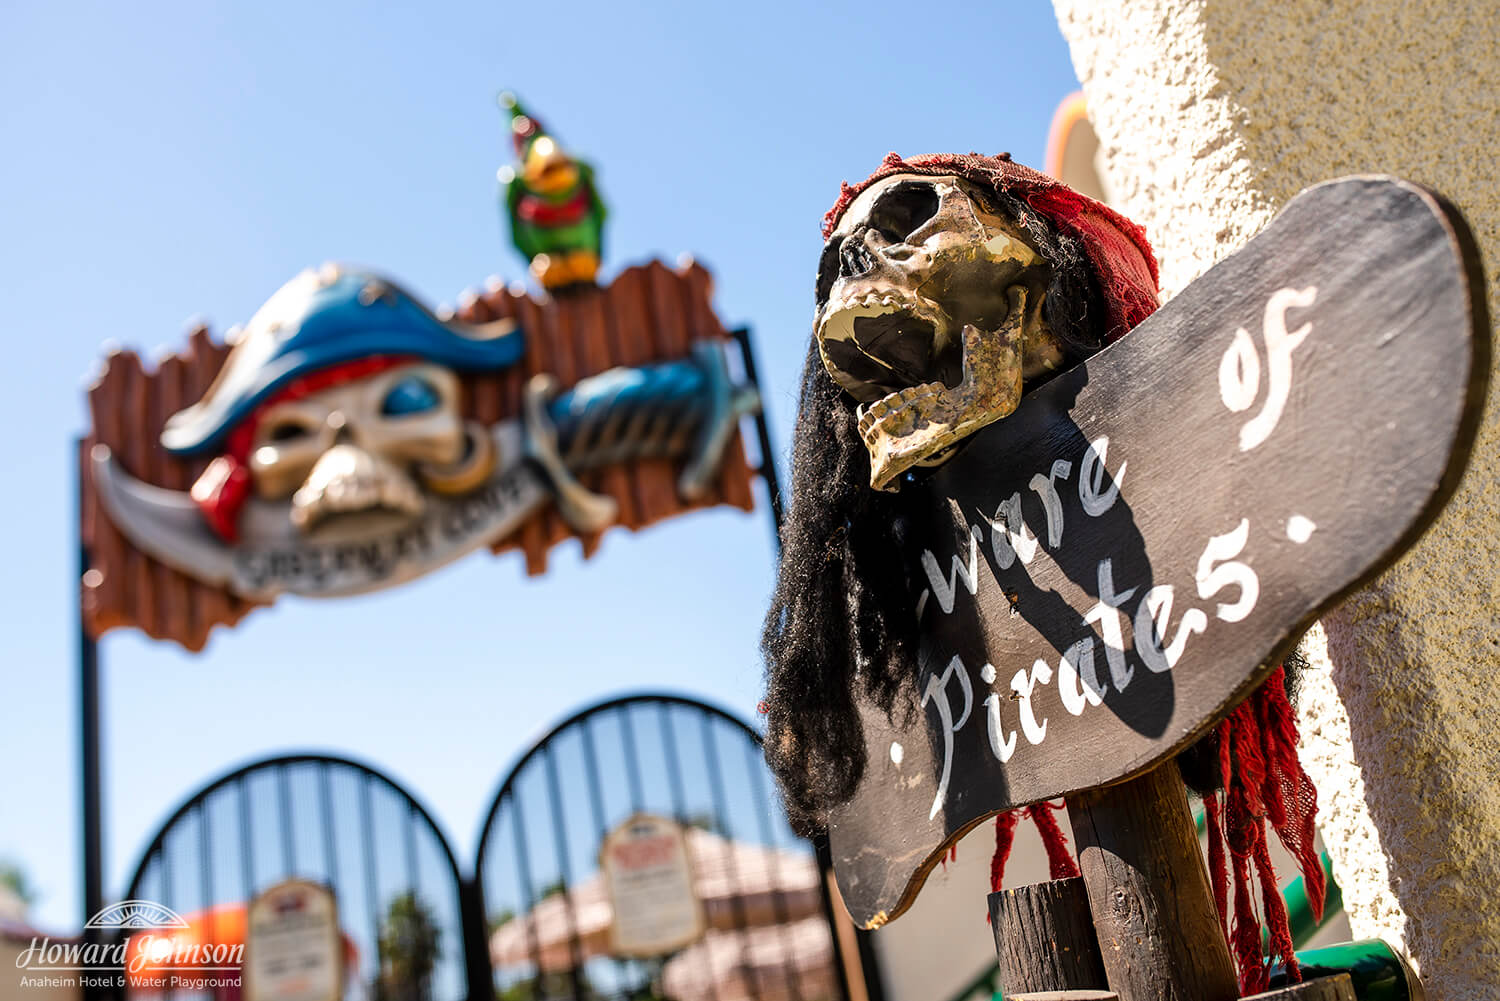 A closeup of skull and pirate decor, including a 'Beware of Pirates' sign and the Castaway Cove water playground sign at Howard Johnson Anaheim